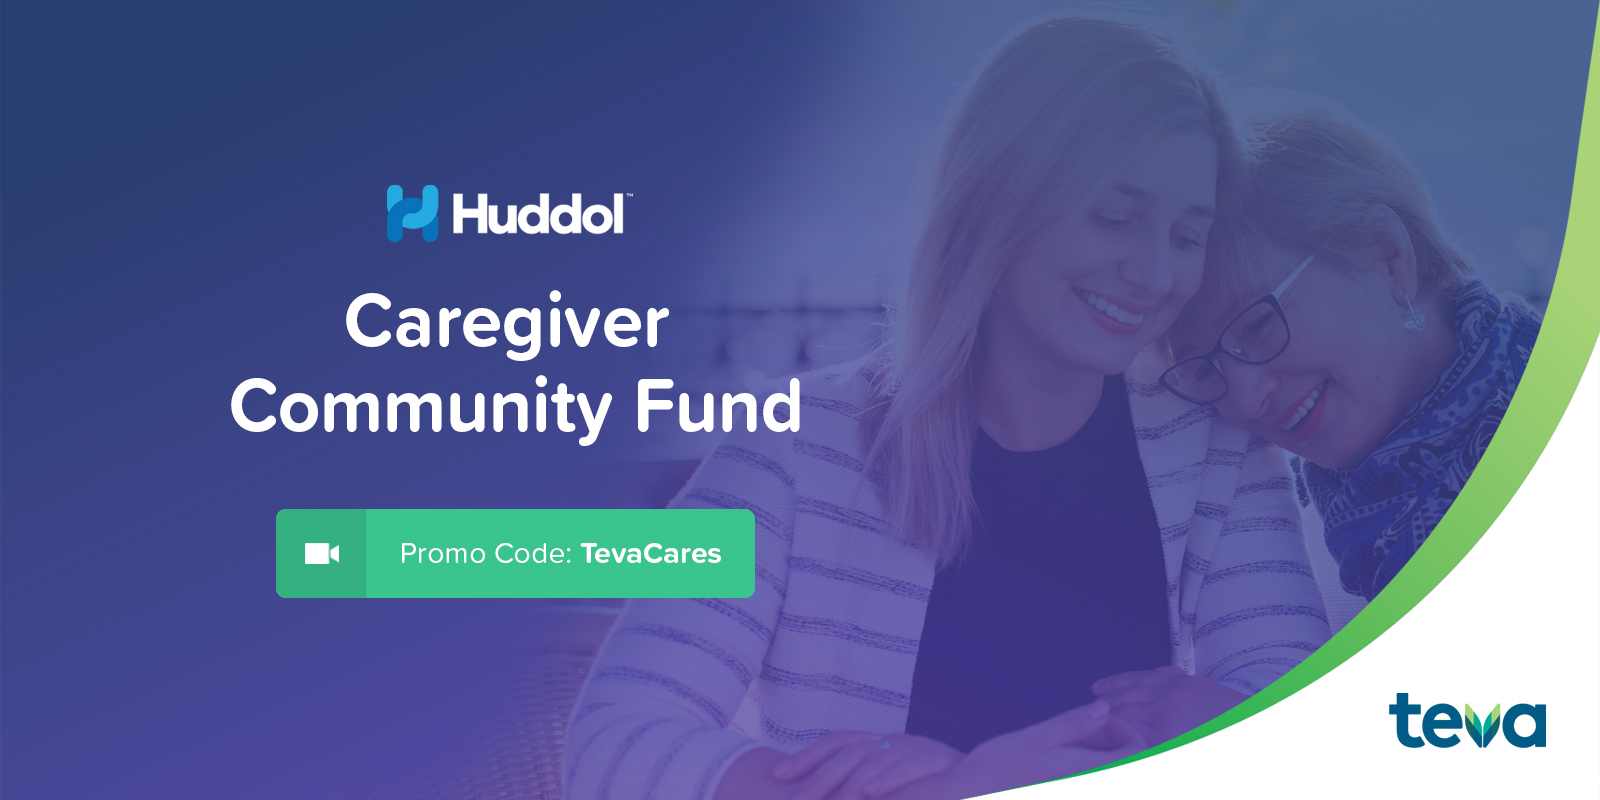 Caregiver Community Fund